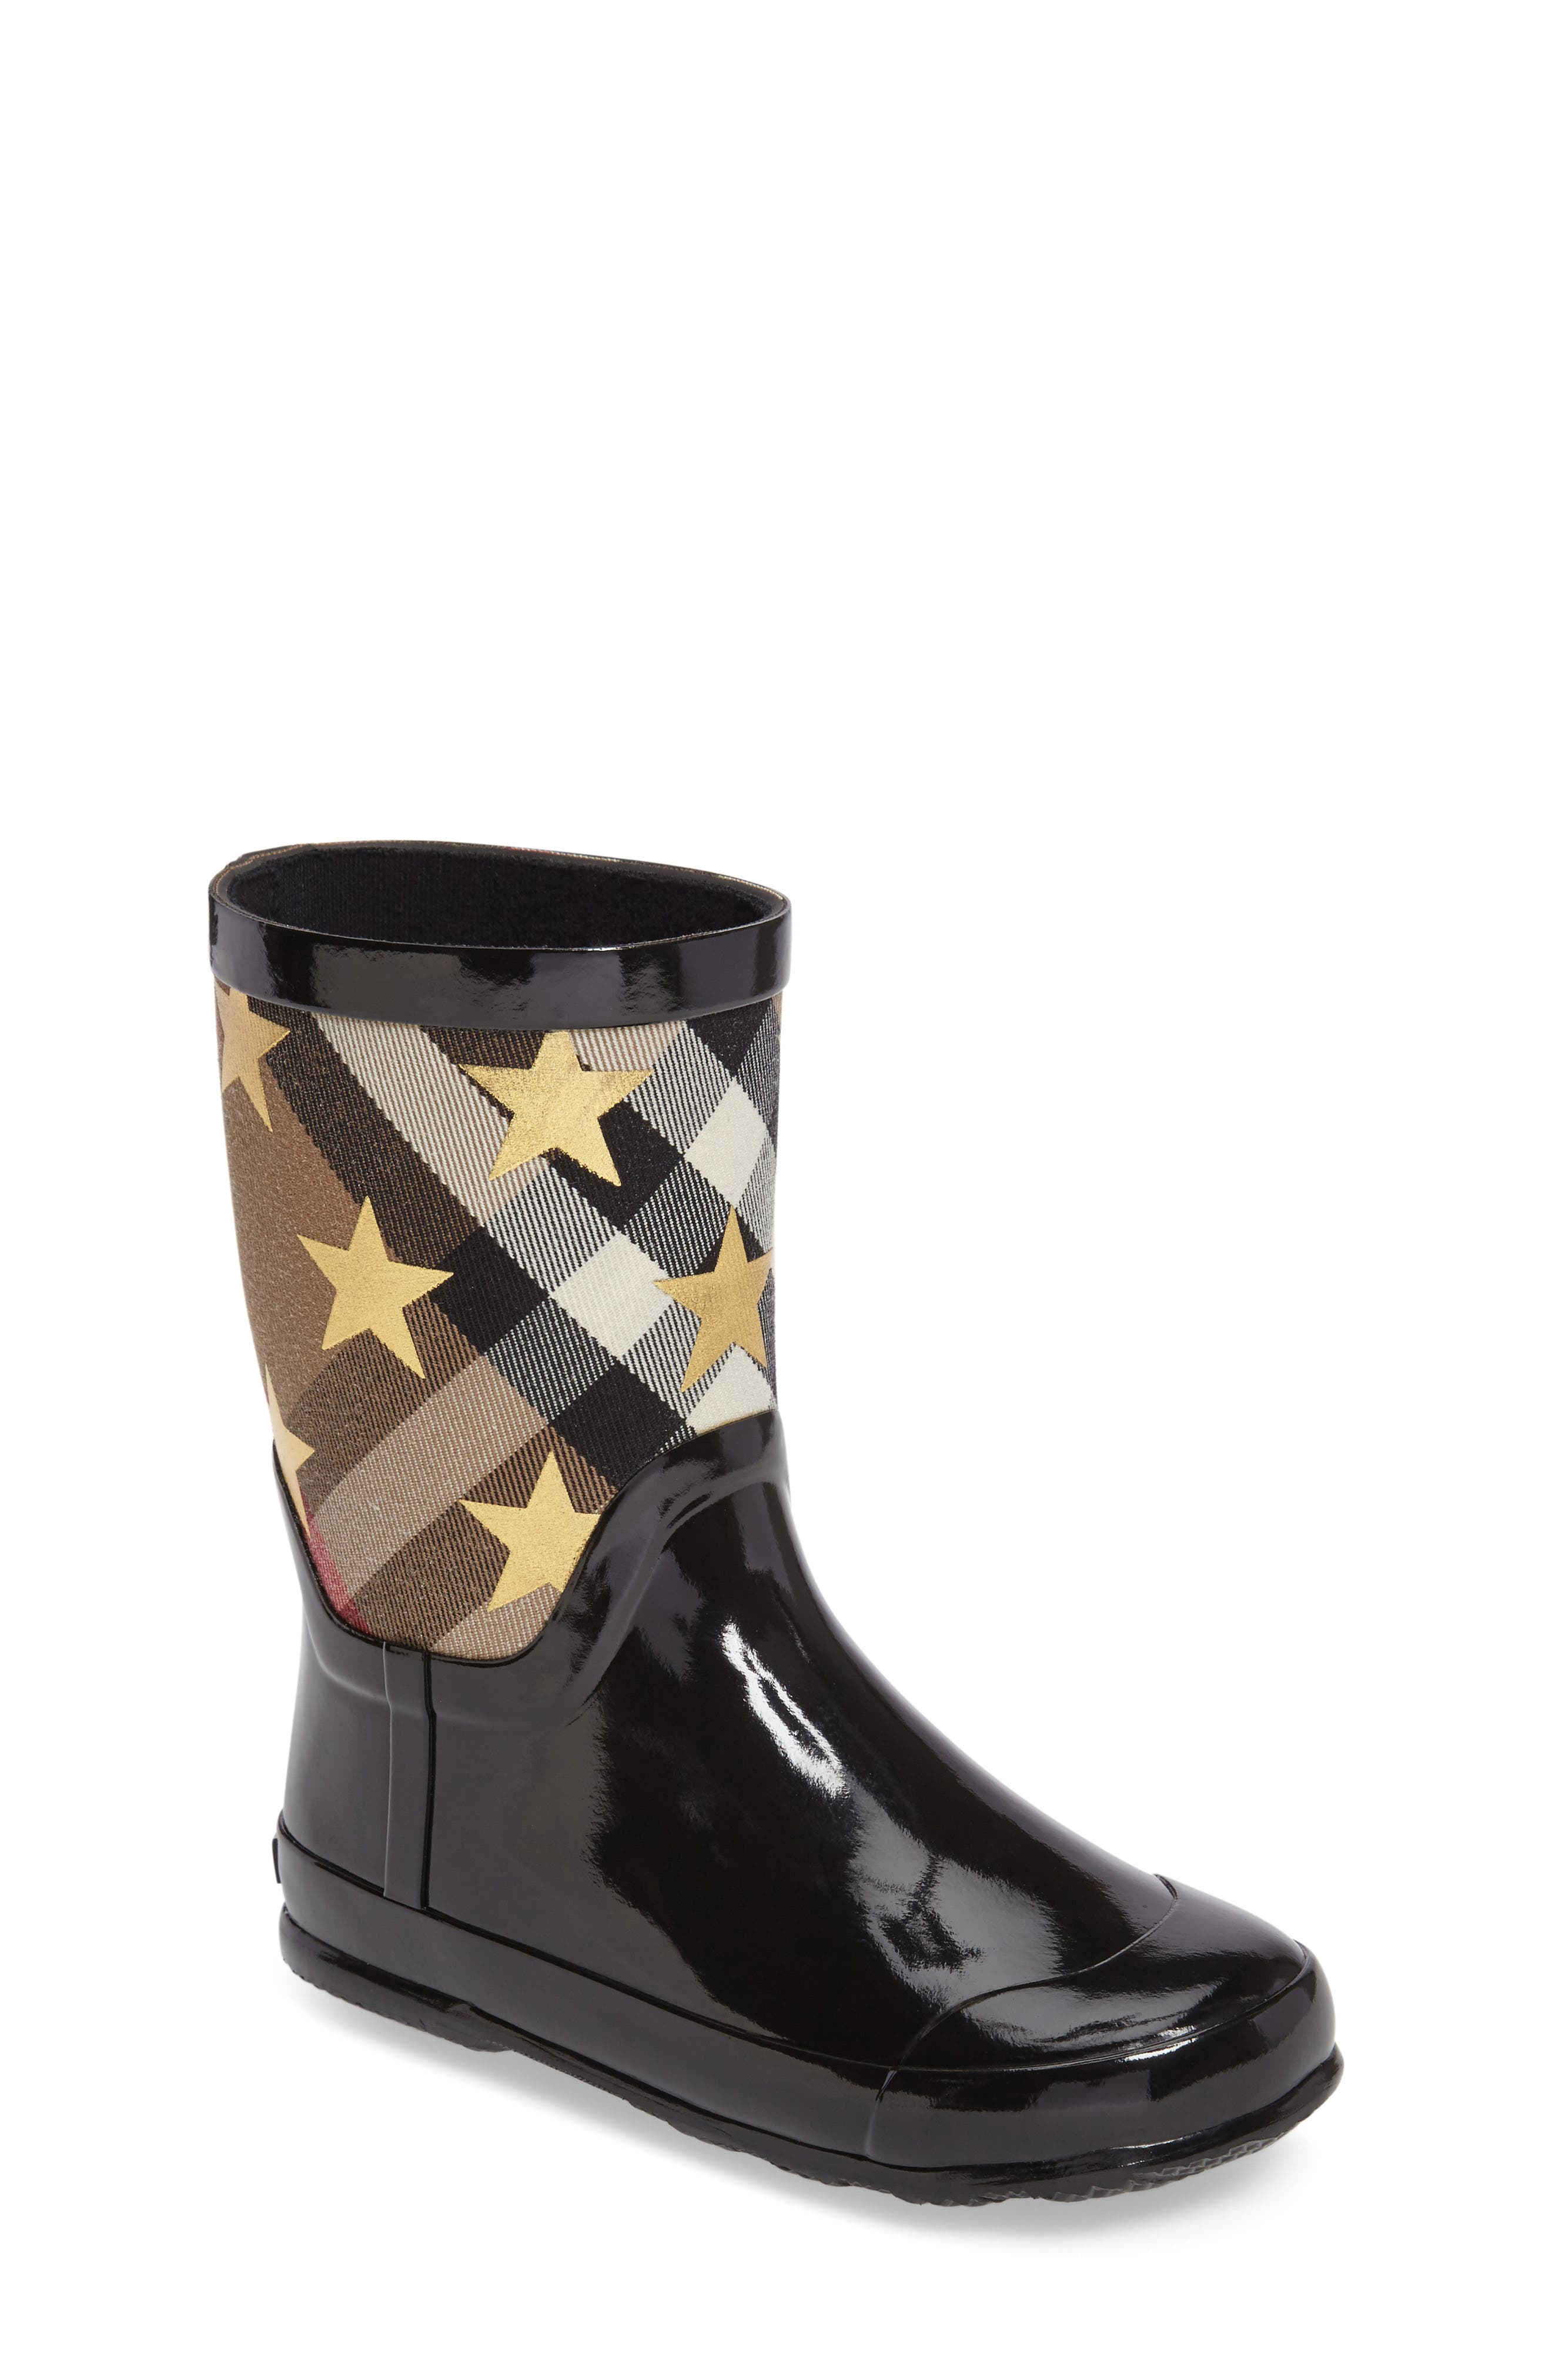 Ranmoor Star Rain Boot,                             Main thumbnail 1, color,                             001